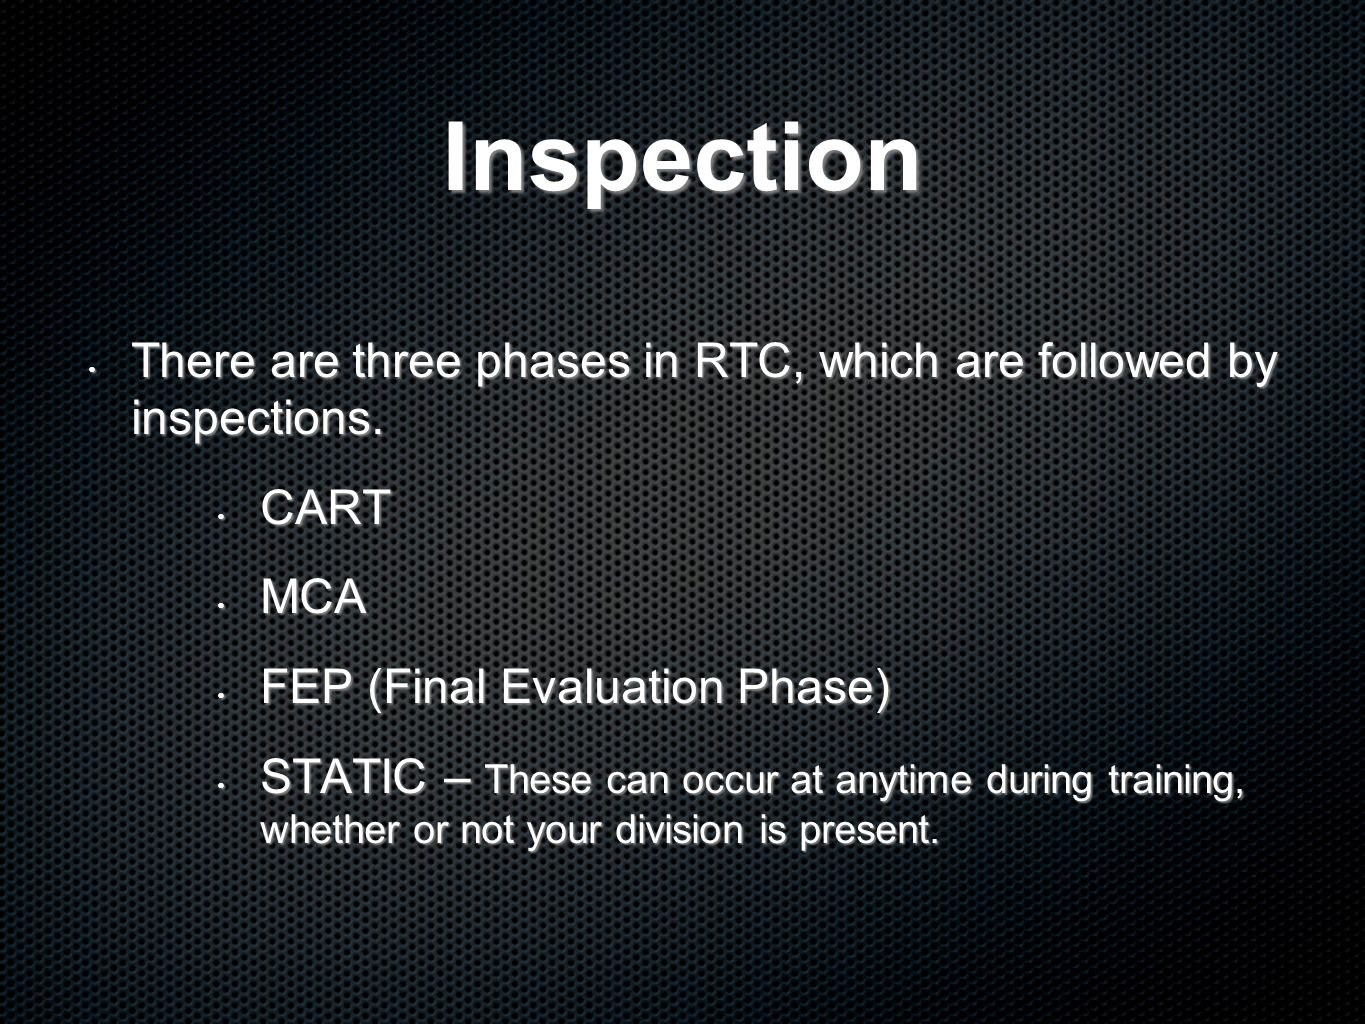 Inspection There are three phases in RTC, which are followed by inspections. CART. MCA. FEP (Final Evaluation Phase)